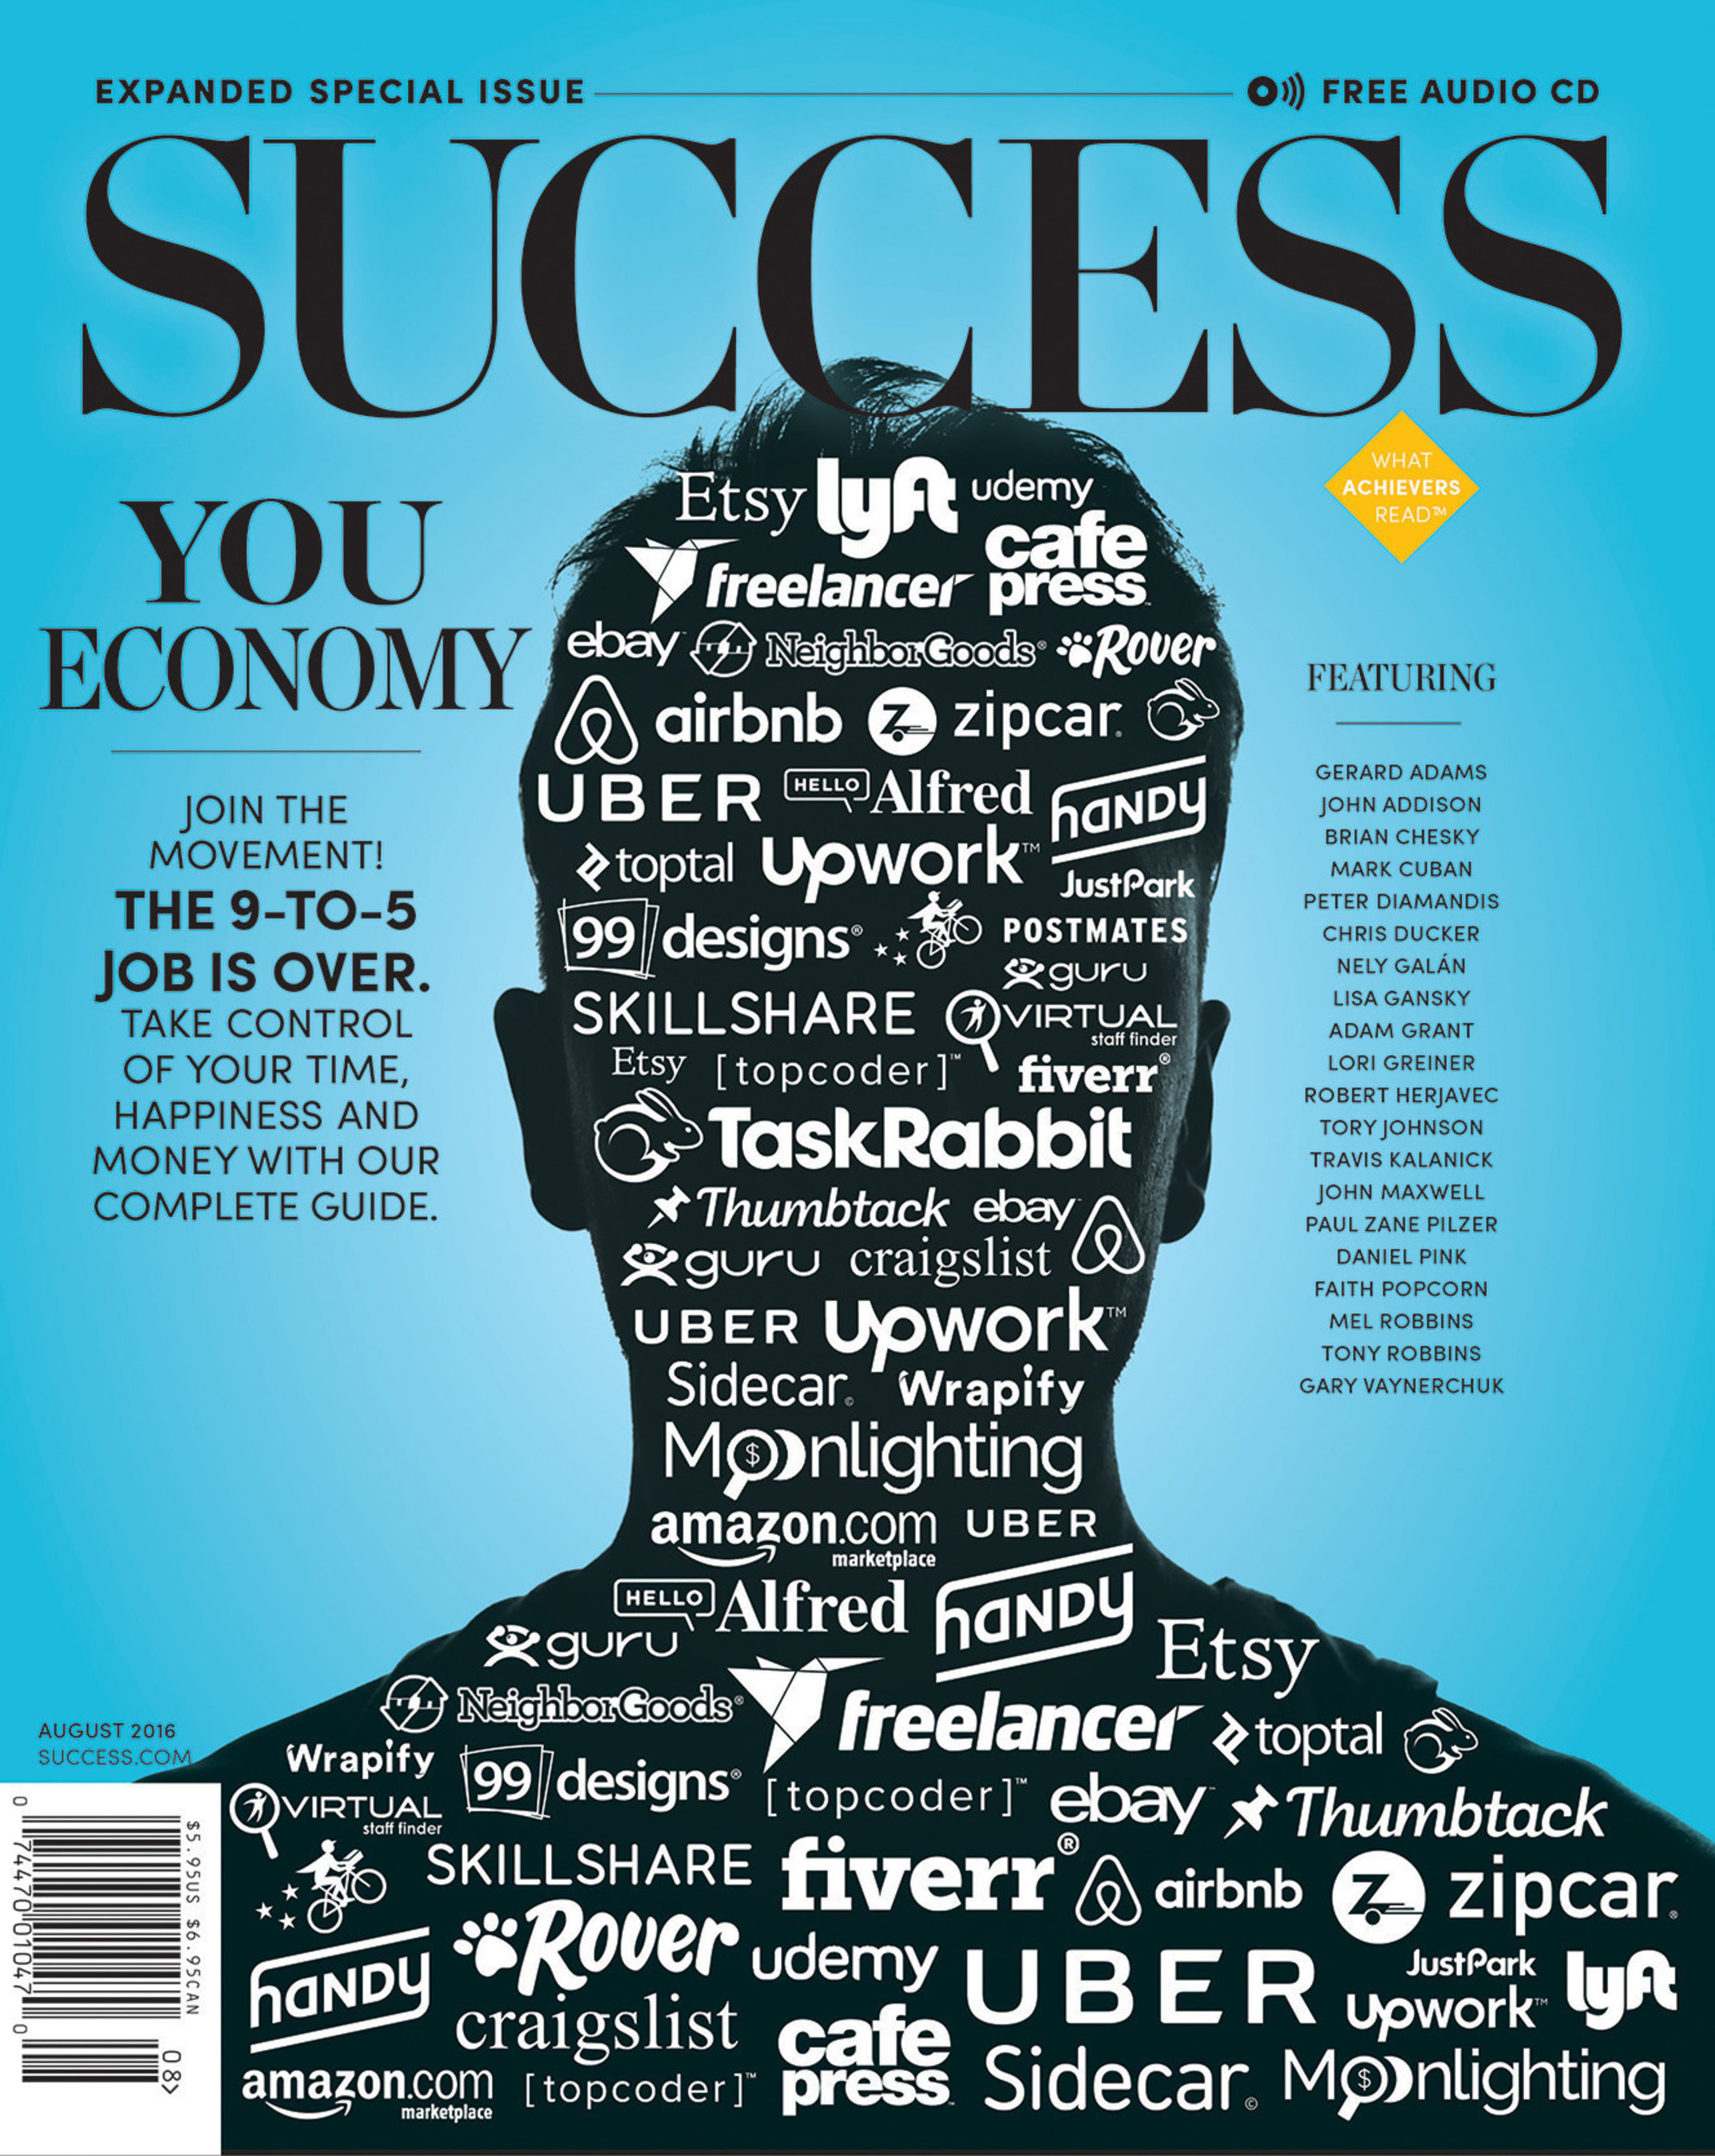 SUCCESS August issue focuses on the shift in people who opt out of the traditional economy to join the YouEconomy